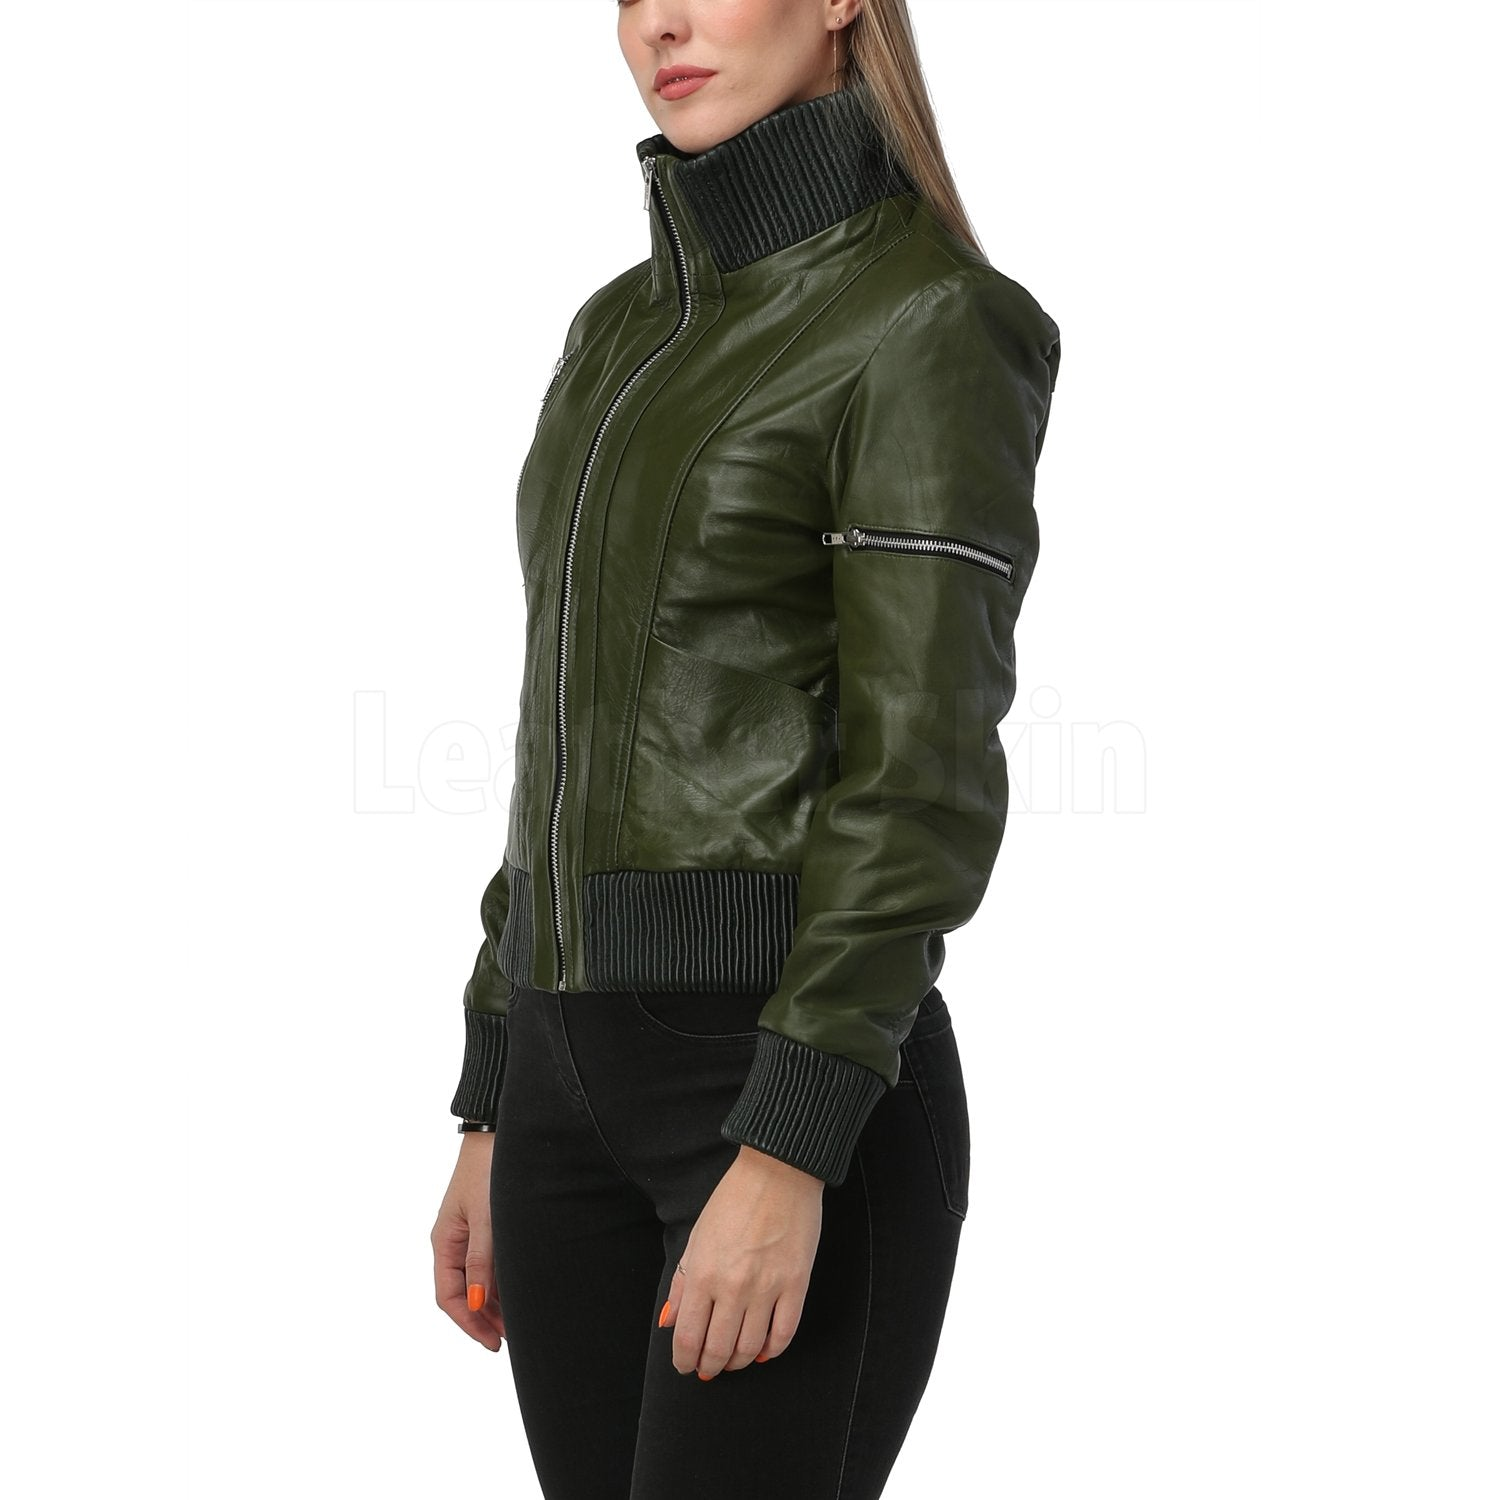 Carol Green Bomber Leather Jacket